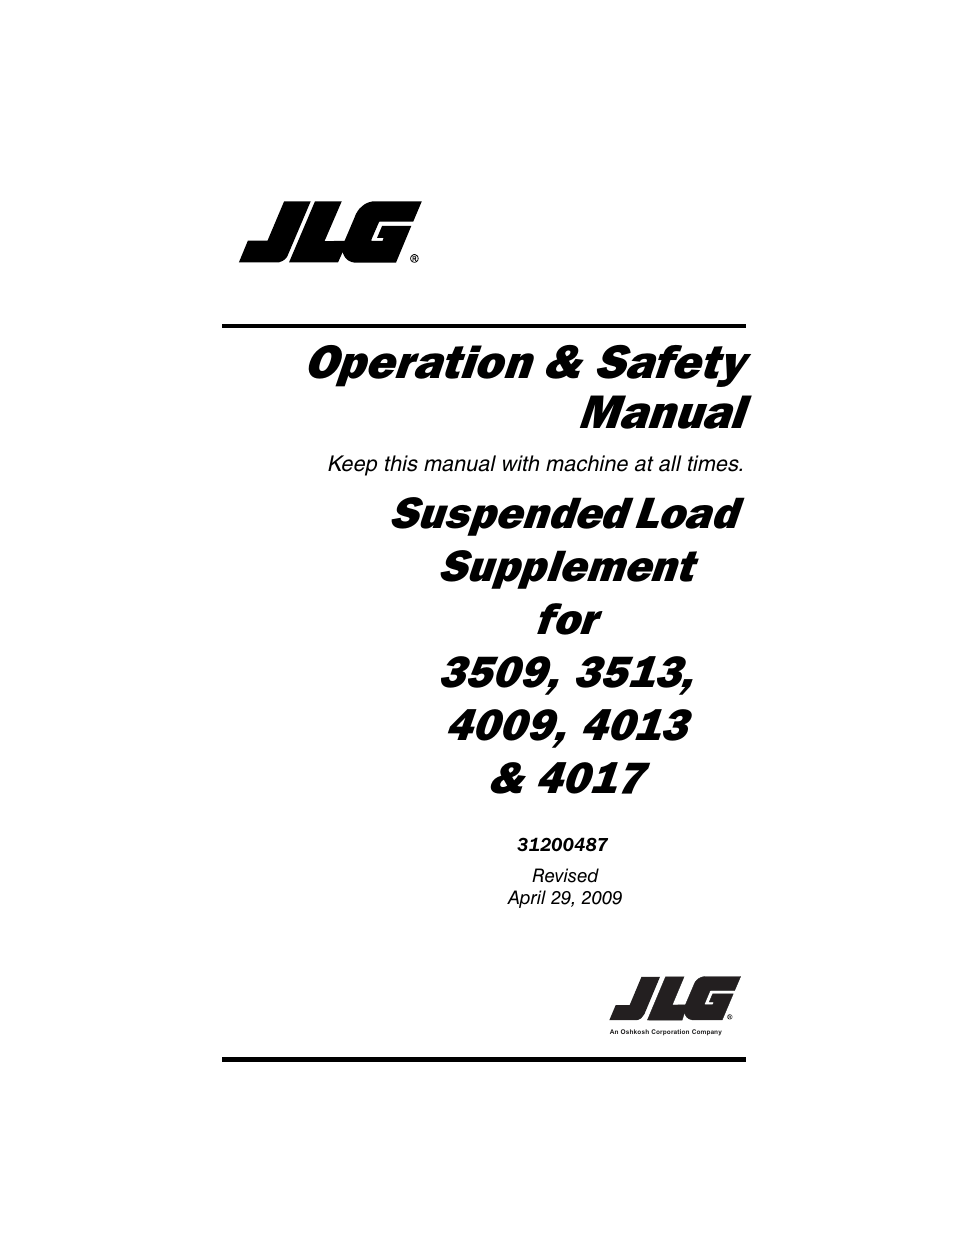 JLG 4009 Suspended Load Supplement Operator Manual User